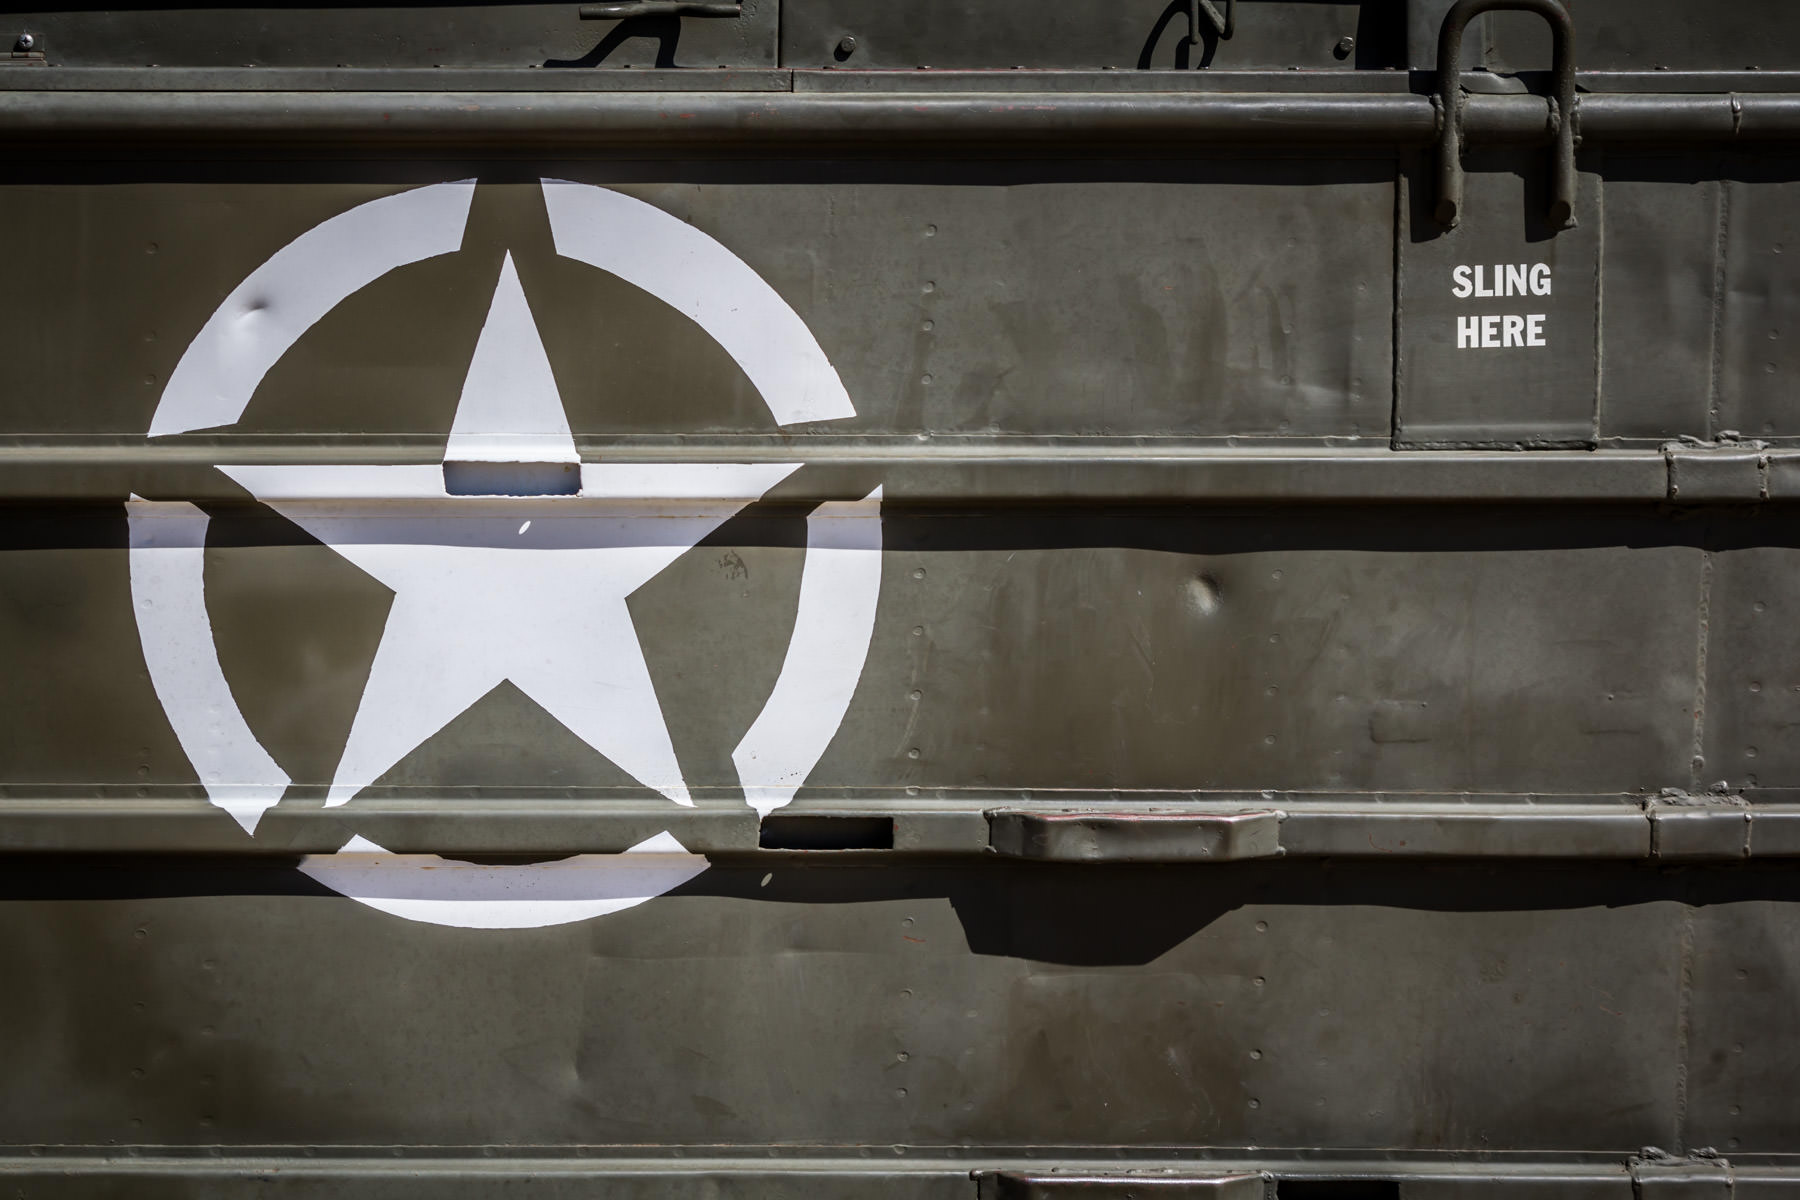 Labeling spotted on a U.S. Army DUKW amphibious vehicle at Addison, Texas' Cavanaugh Flight Museum.